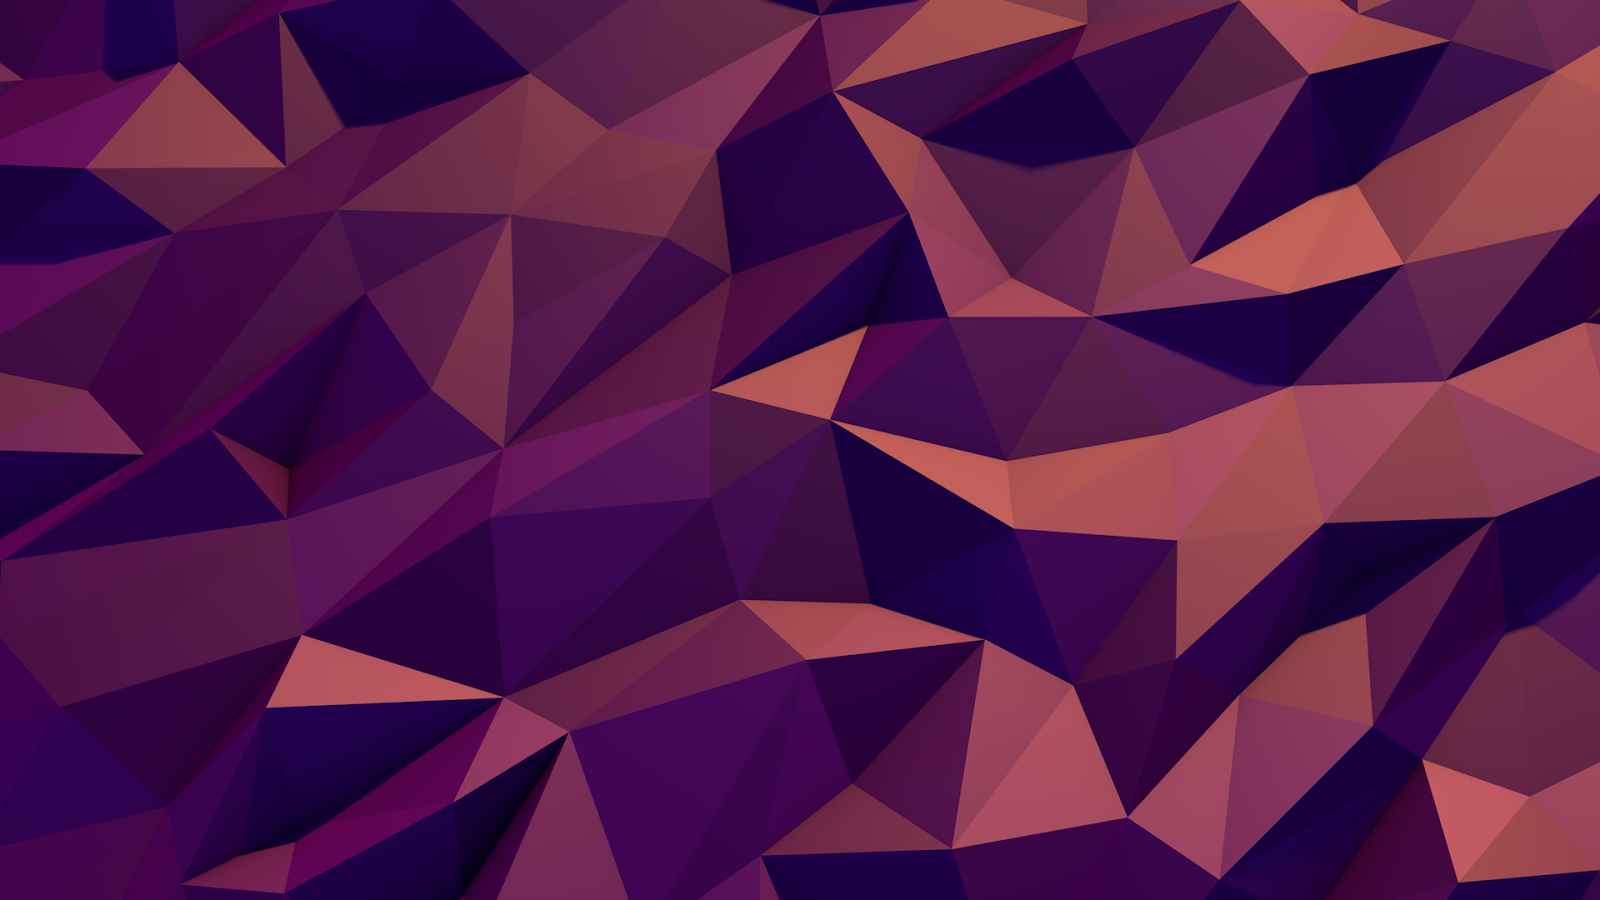 Cool white and blue background - Low Polygon Wallpaper Wallpapersafari